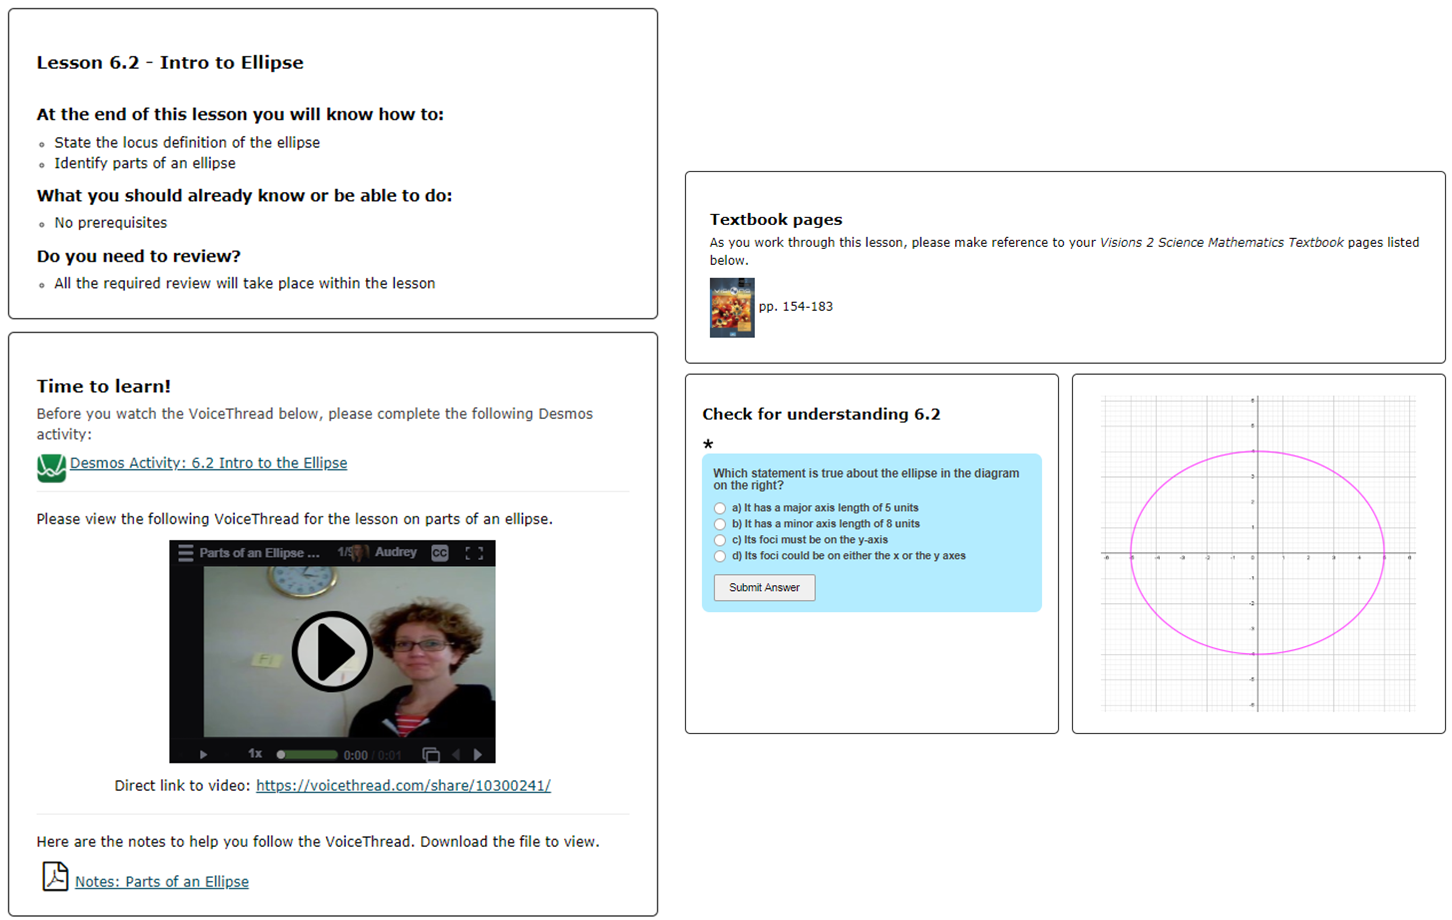 LEARN's Self-Paced Blended Learning - Year 1 | LEARN Blog ...